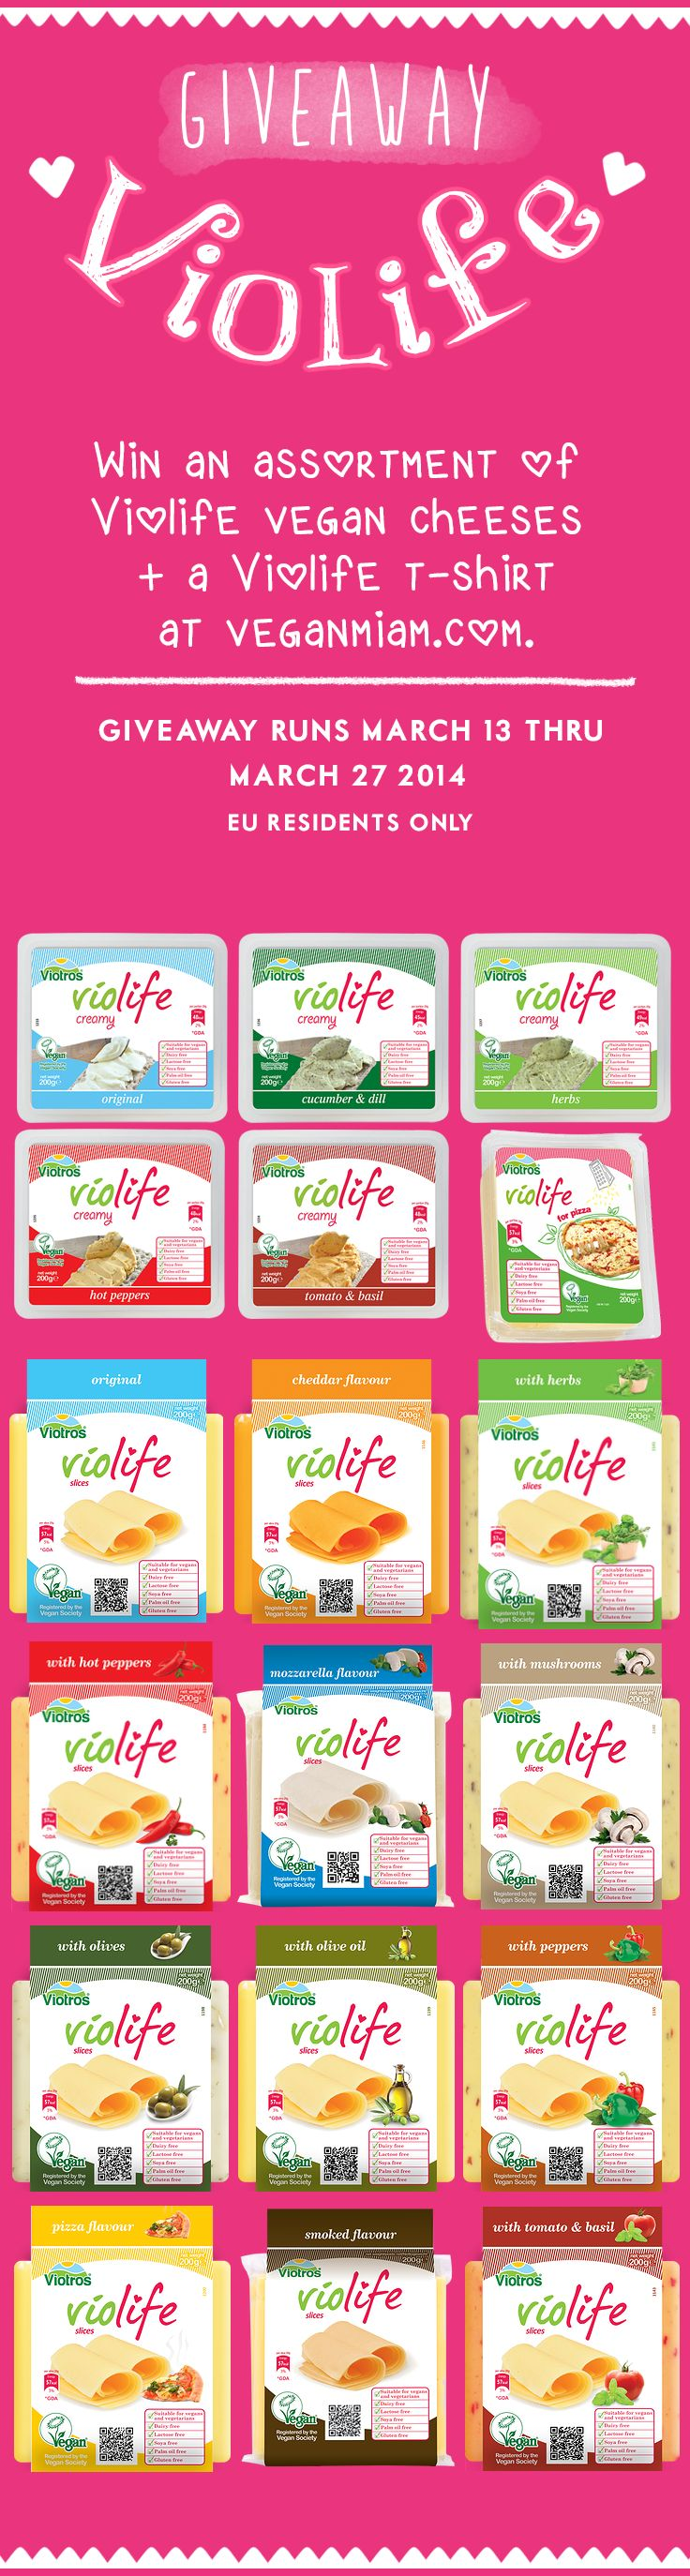 #Violife #Giveaway ♥ Win an assortment of Violife Vegan Cheese Alternatives + a Violife T-Shirt at veganmiam.com. Open to EU Residents only. Giveaway runs March 13 - March 27, 2014.   #glutenfree #soyfree #palmoilfree #vegan #veganmiam  NEED TO TRY THESE 'CHEESE'!